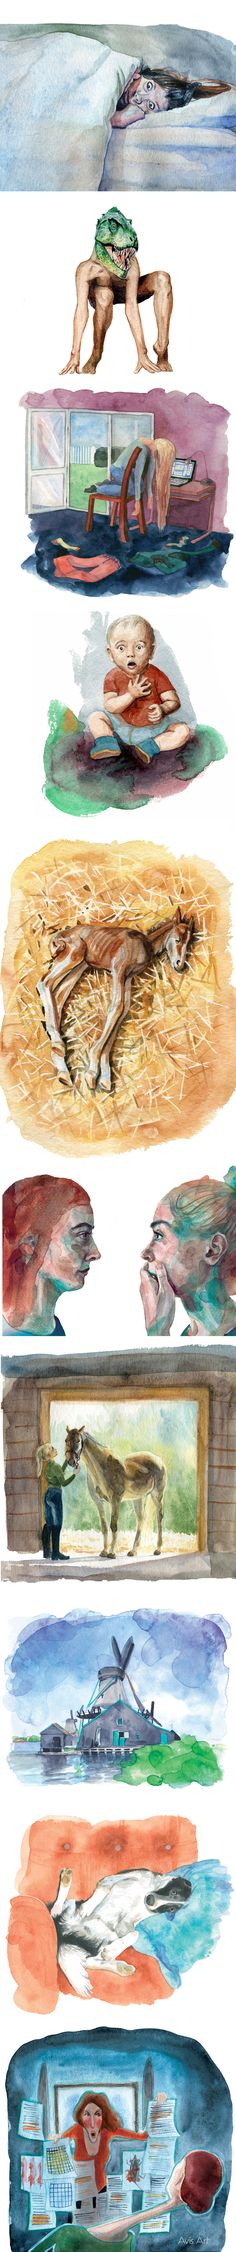 "Watercolour illustrations by AVIS / Monika Volakova (for the slovak book ""Čo som komu urobila?"")"